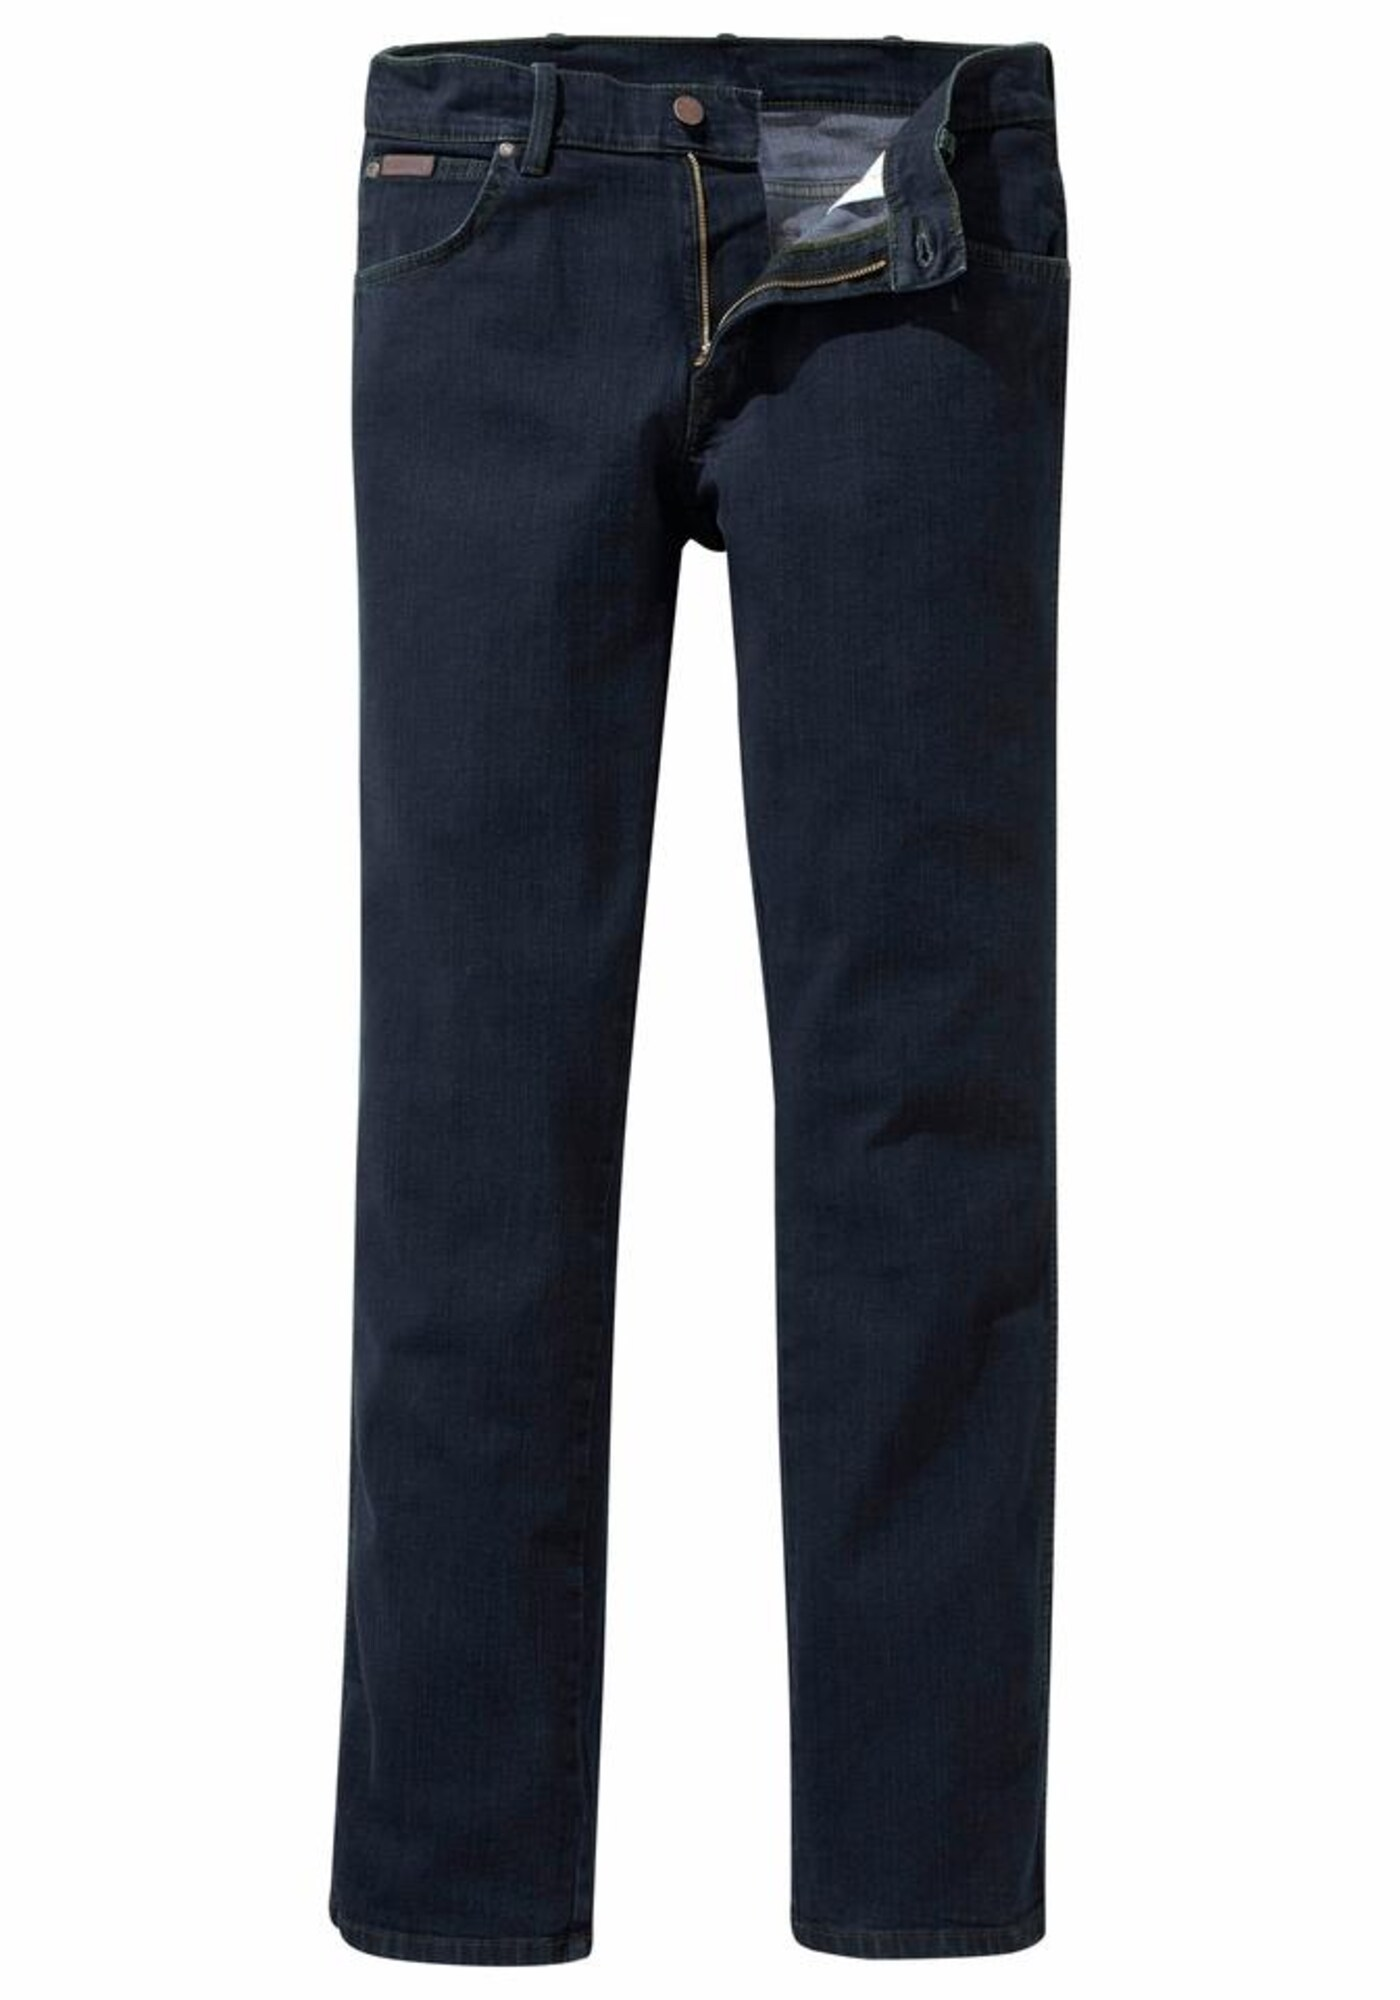 WRANGLER Heren Jeans Texas Stretch donkerblauw